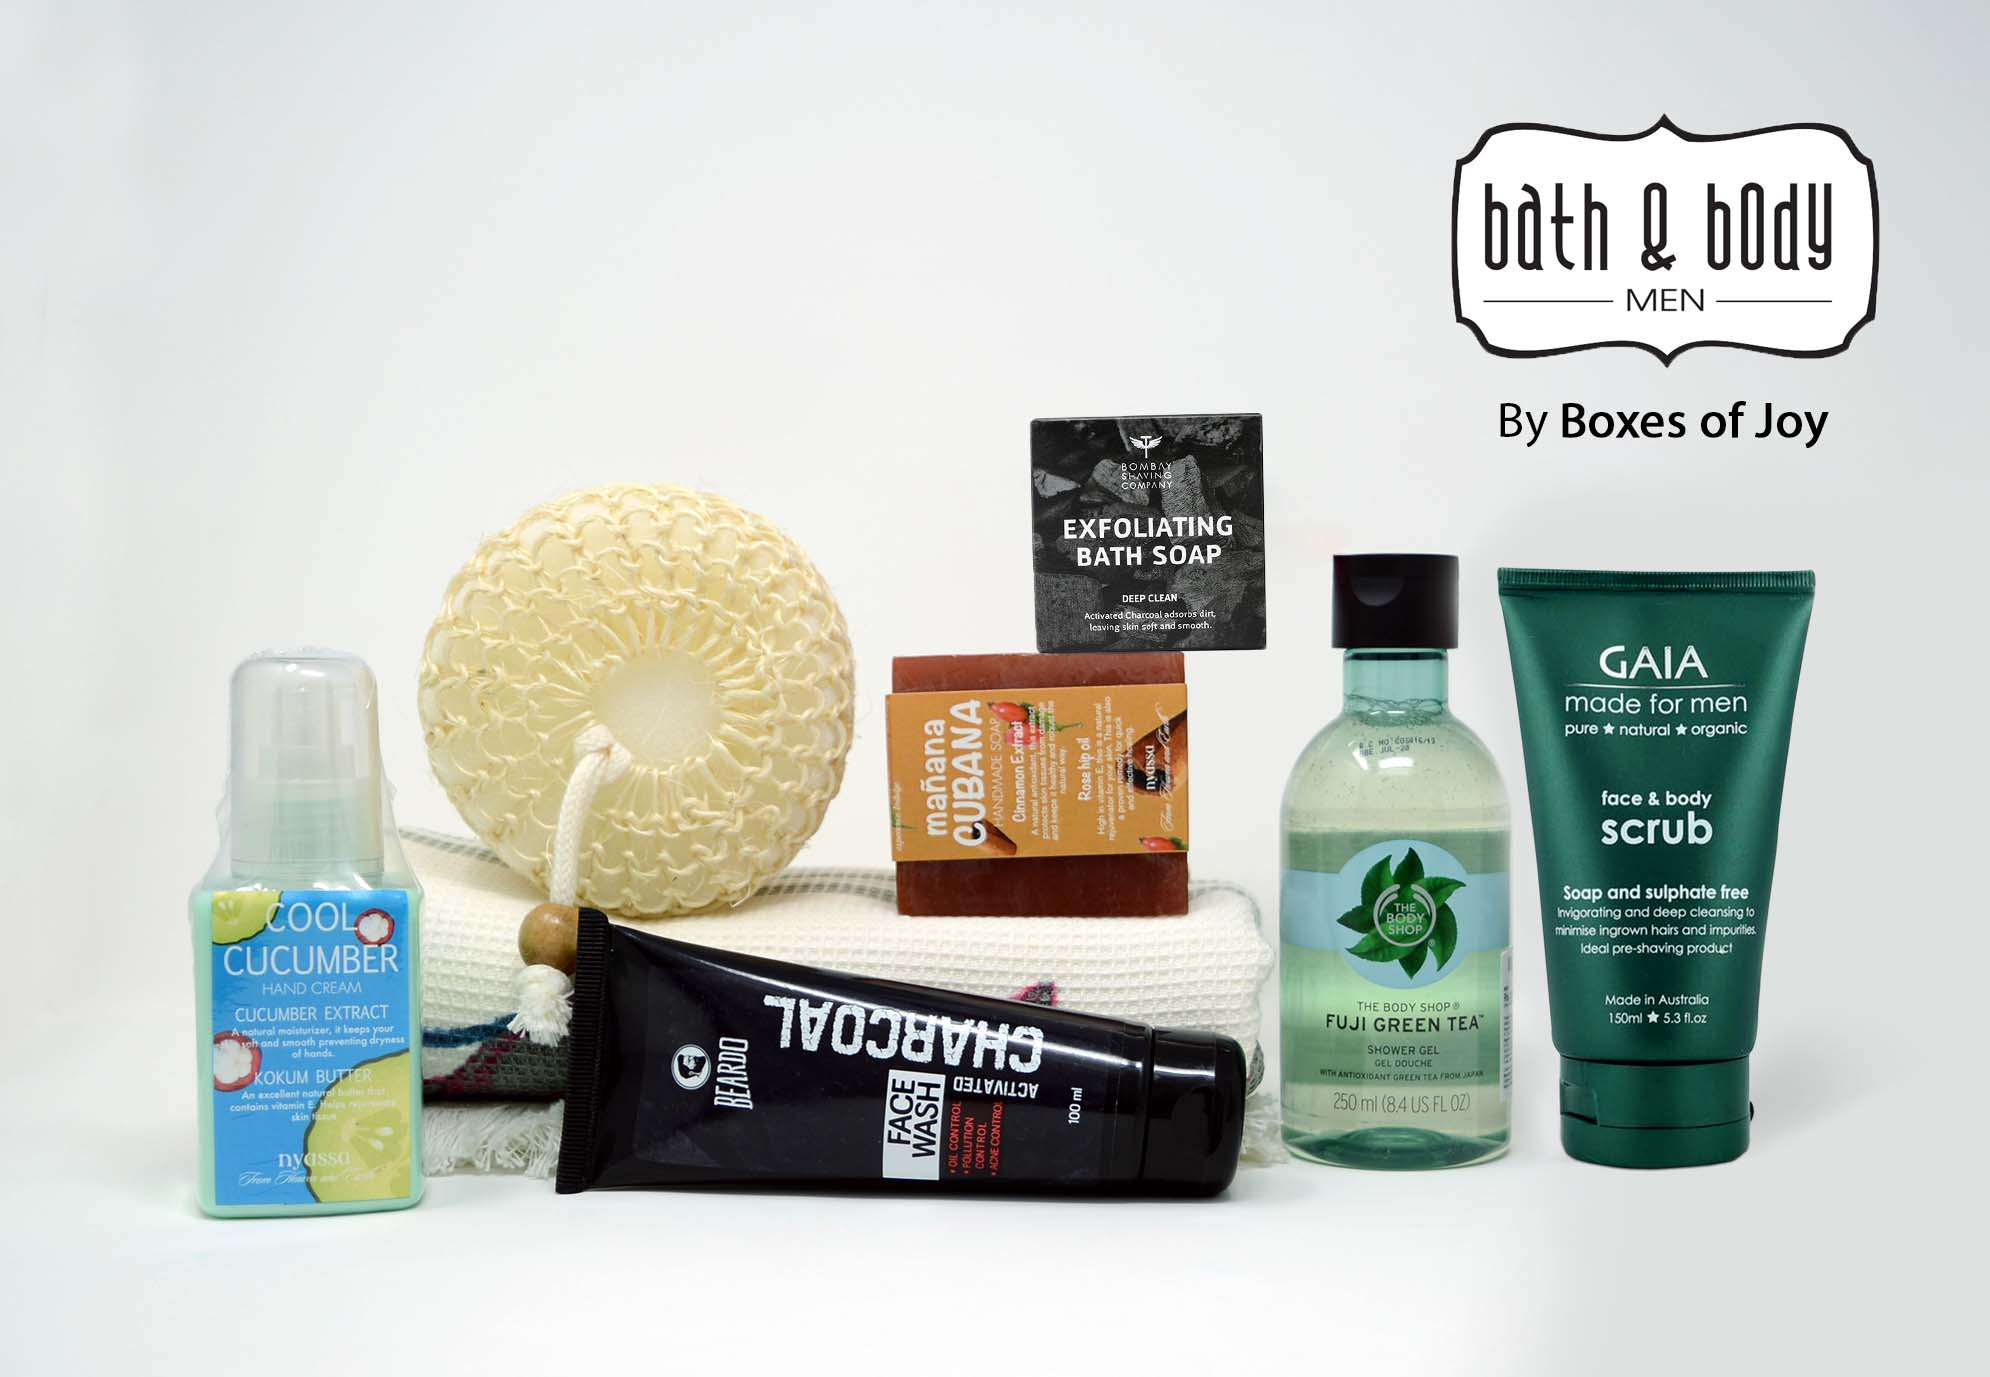 Bath & Body Box for Men - Aug 2018